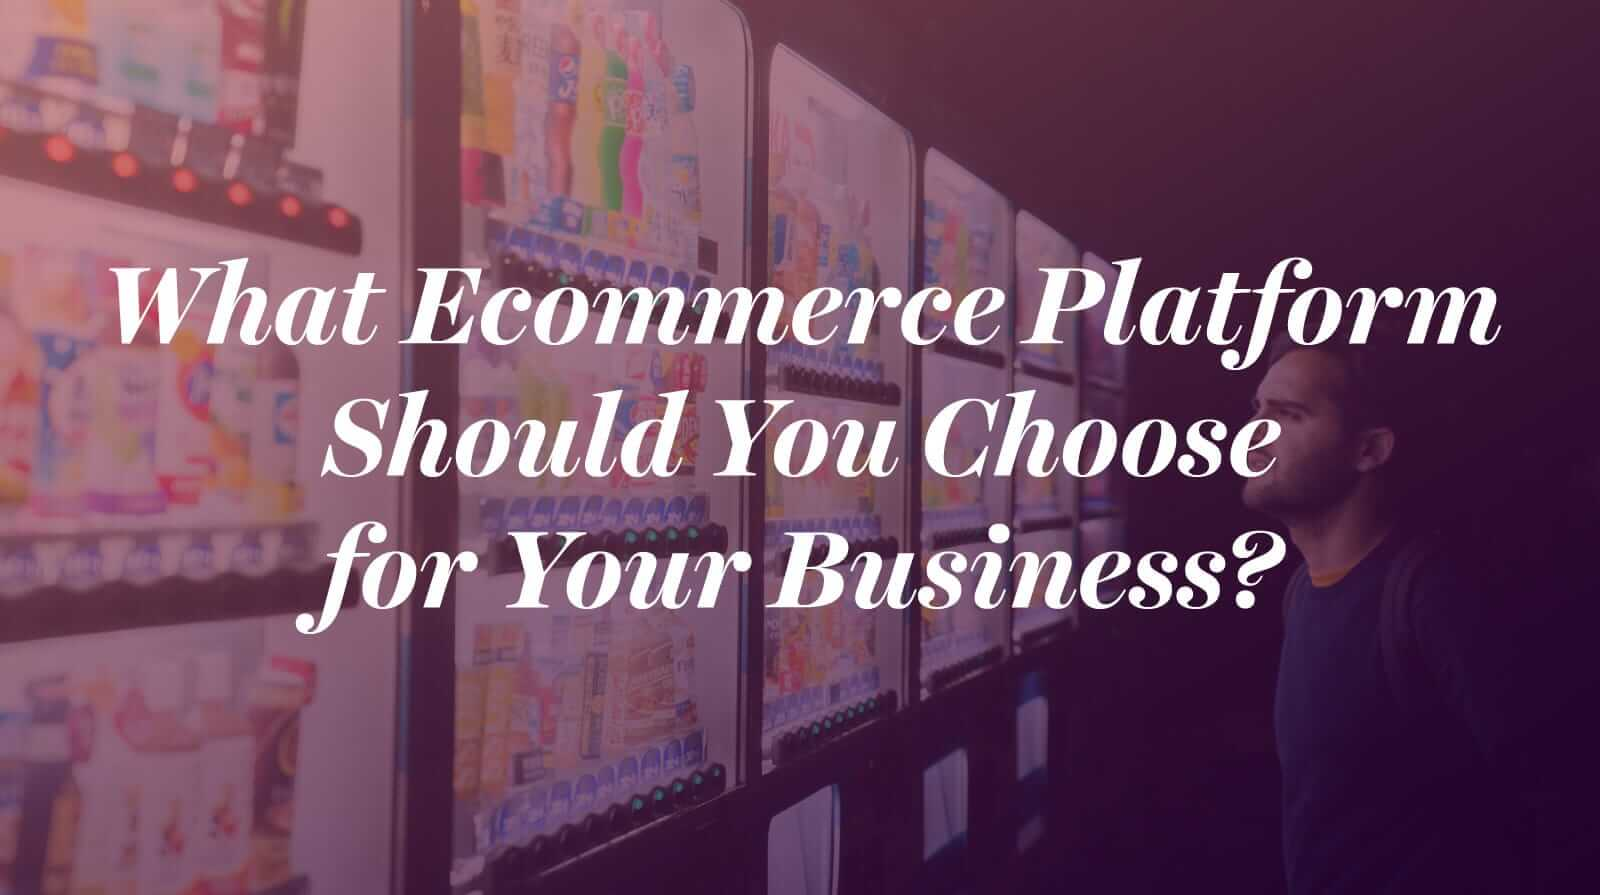 What Ecommerce Platform Should You Choose for Your Business